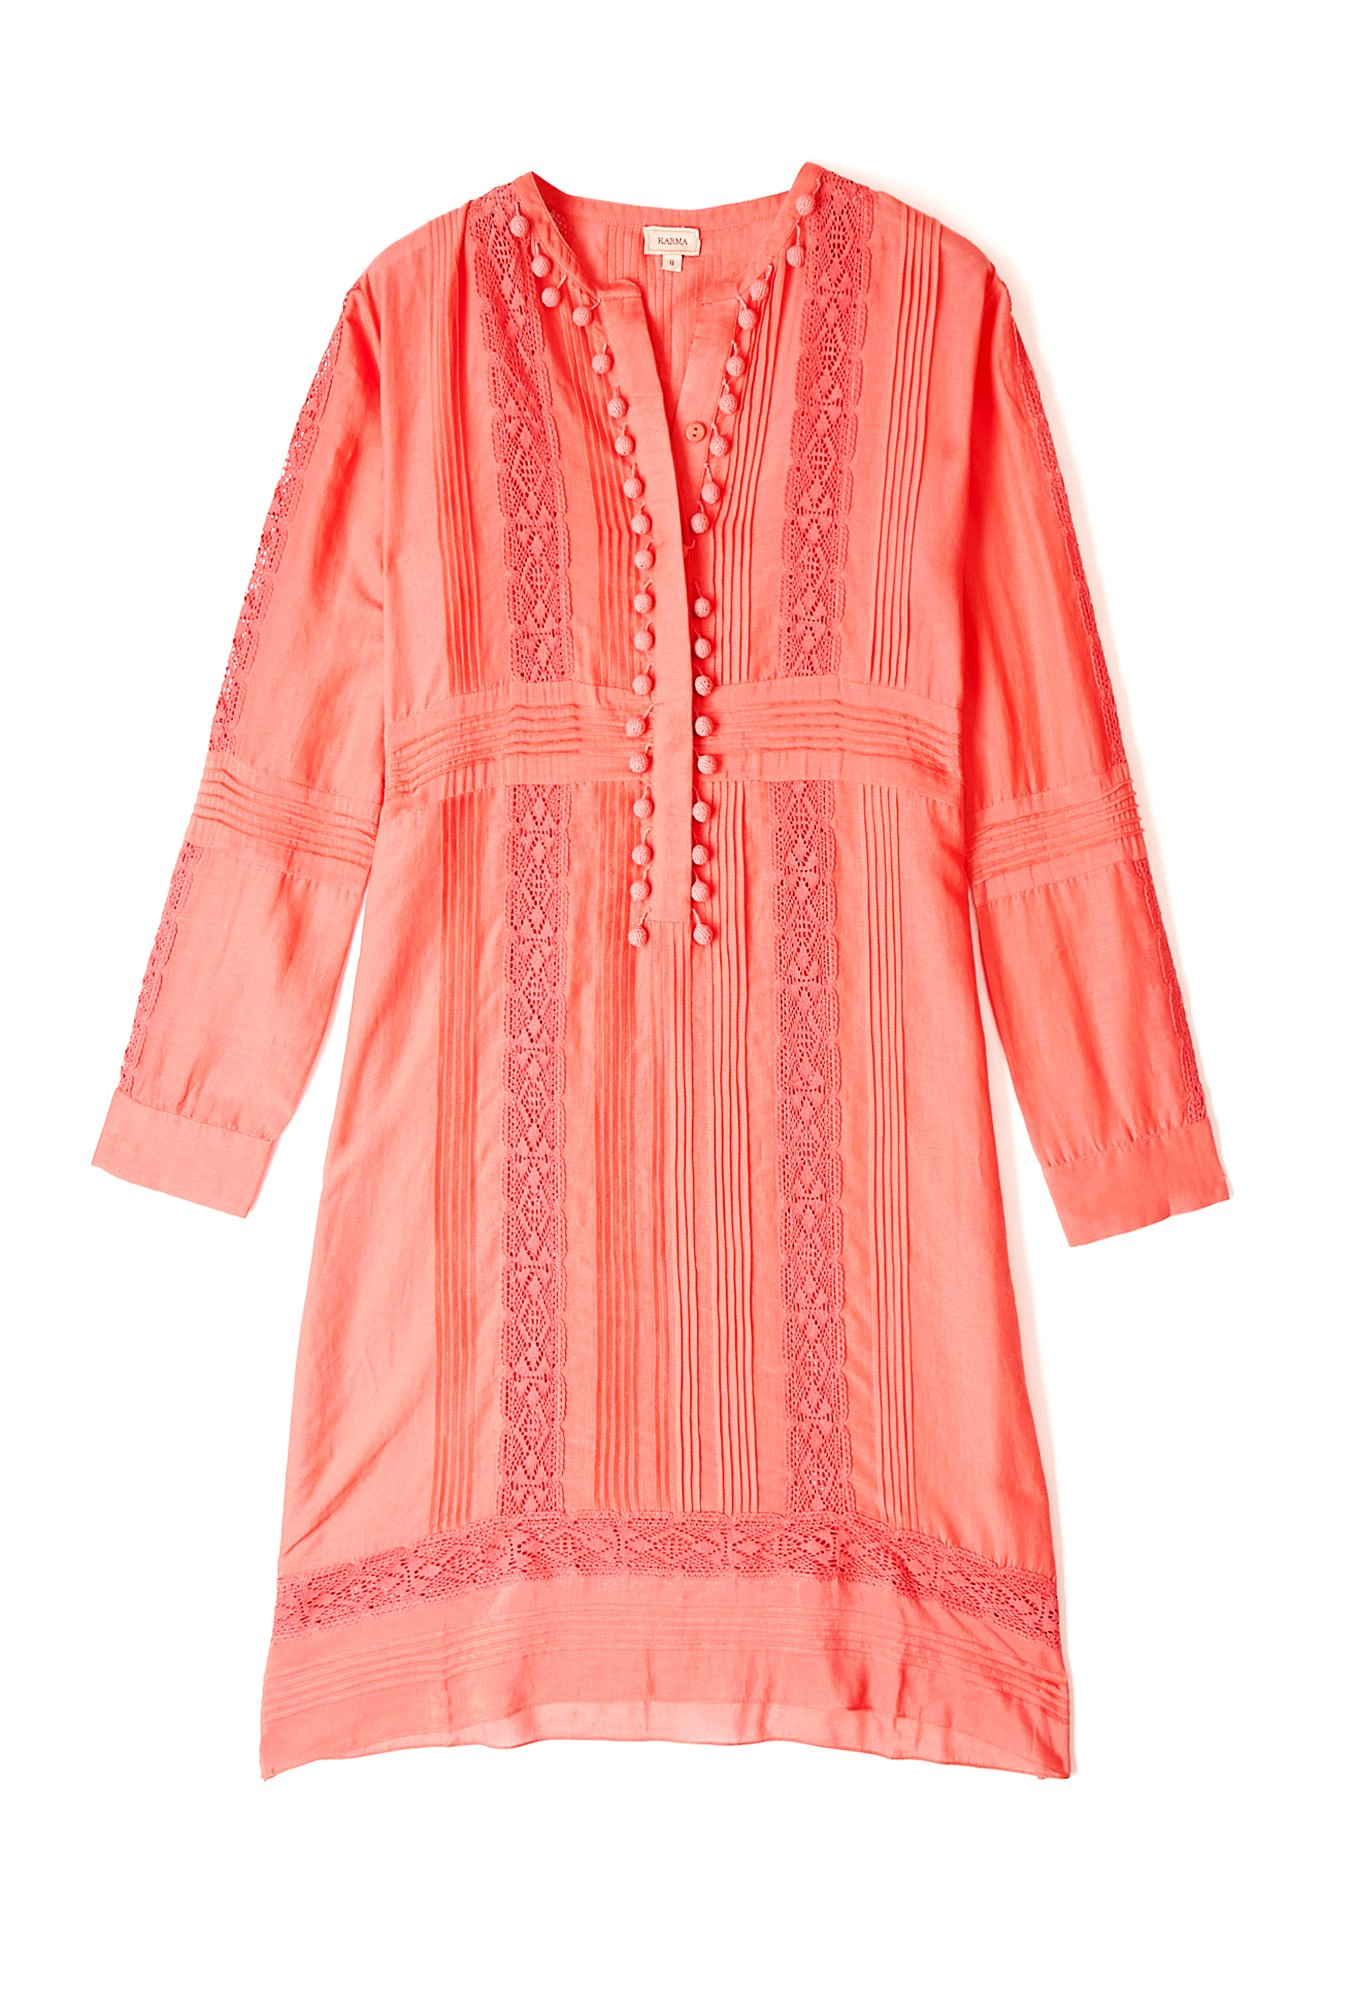 Shop Women's BCX size S Blouses at a discounted price at Poshmark. Description: Coral BCX flowey dress shirt with a built in cami and detachable necklace.. Sold by kitchos1. Fast delivery, full service customer support.